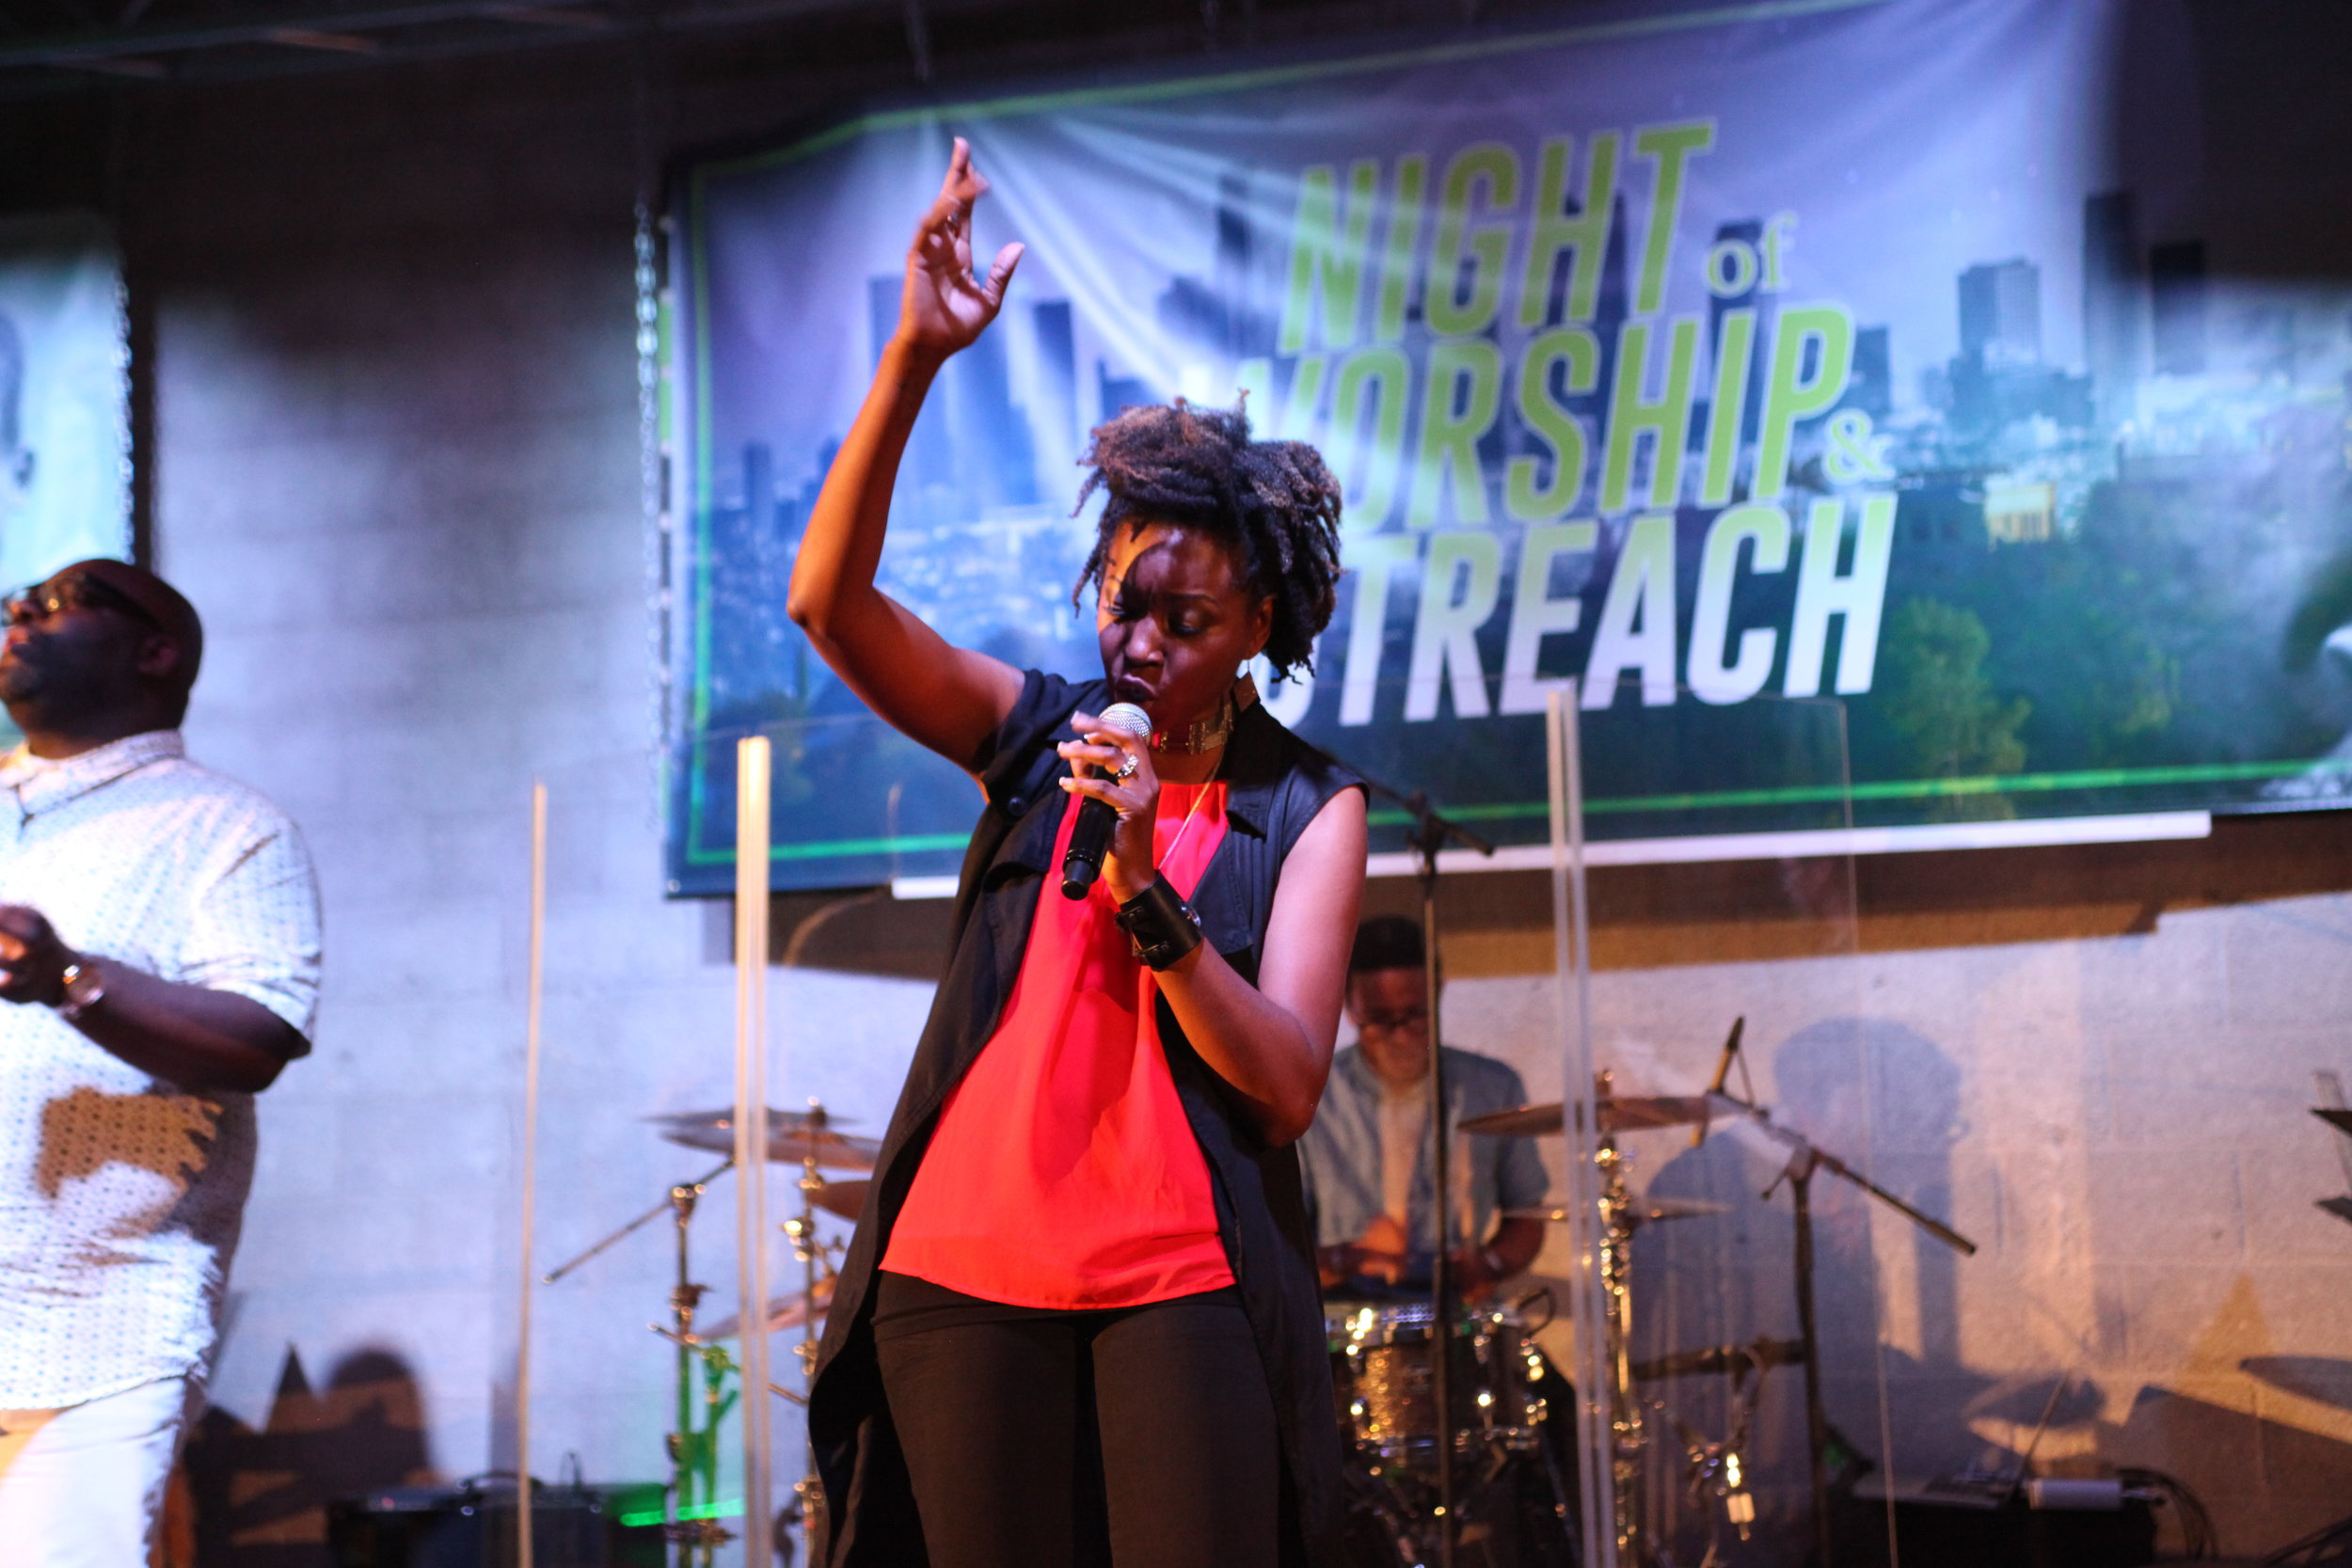 night of worship, reach up reach out